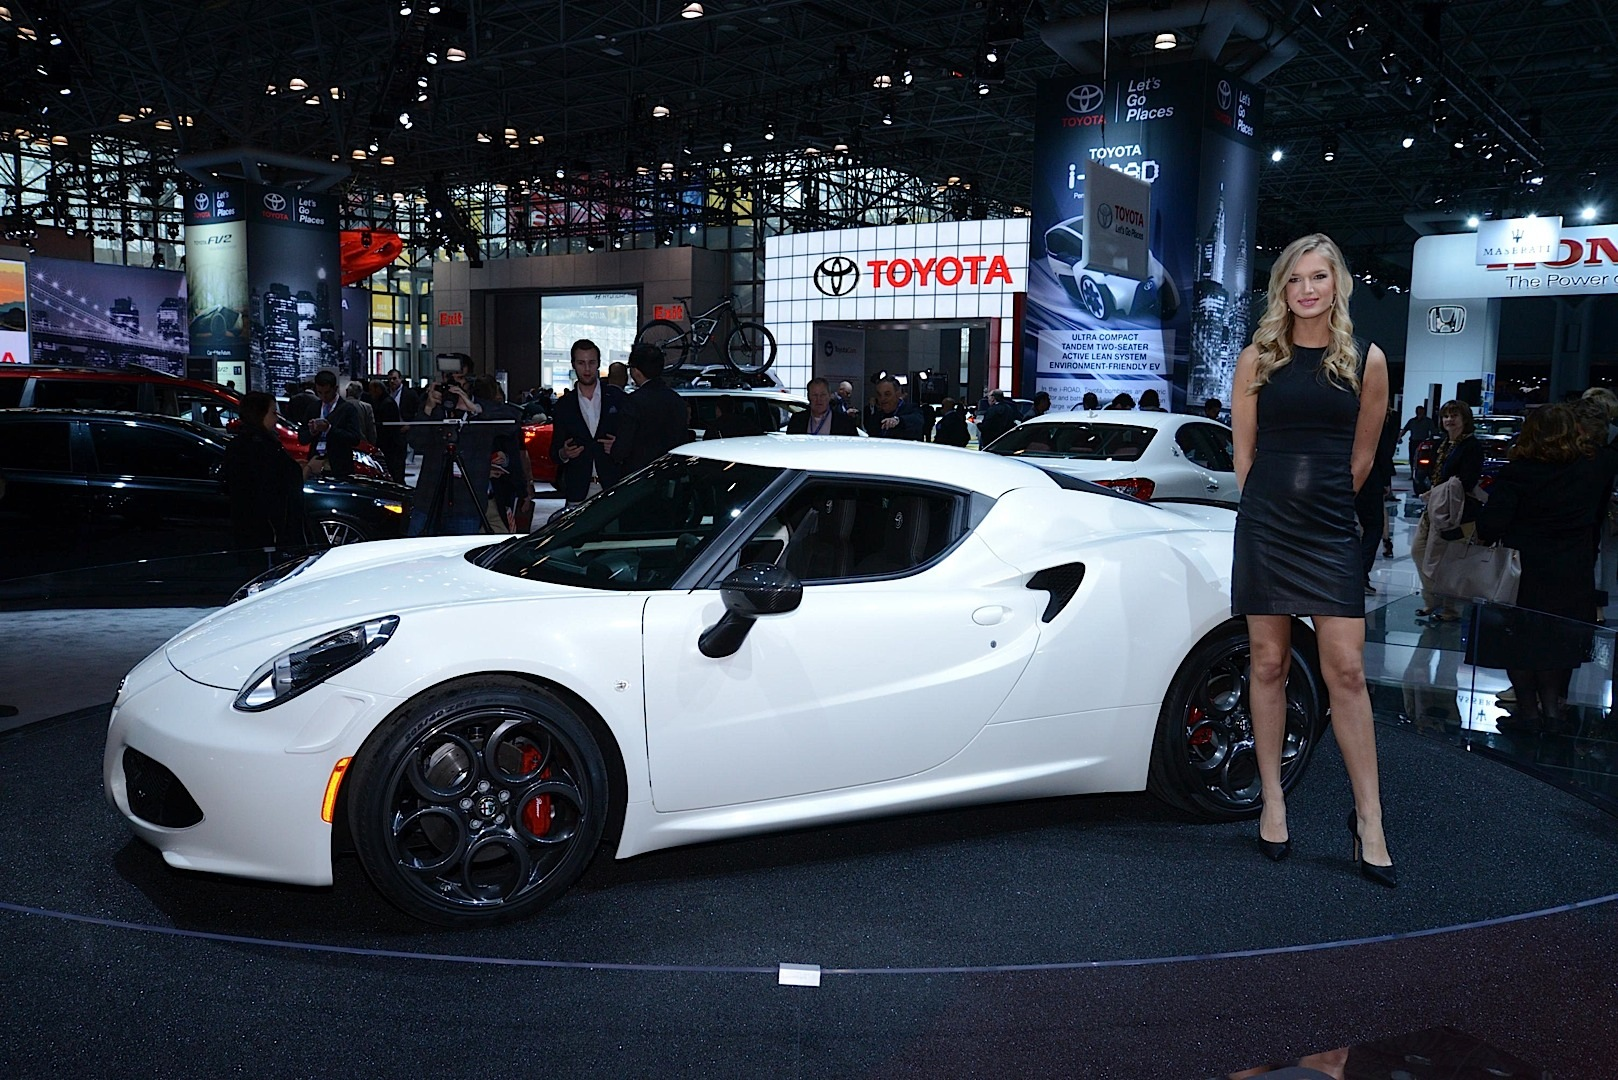 Hot Girls Of The New York Auto Show Live Photos Autoevolution - When is the new york car show